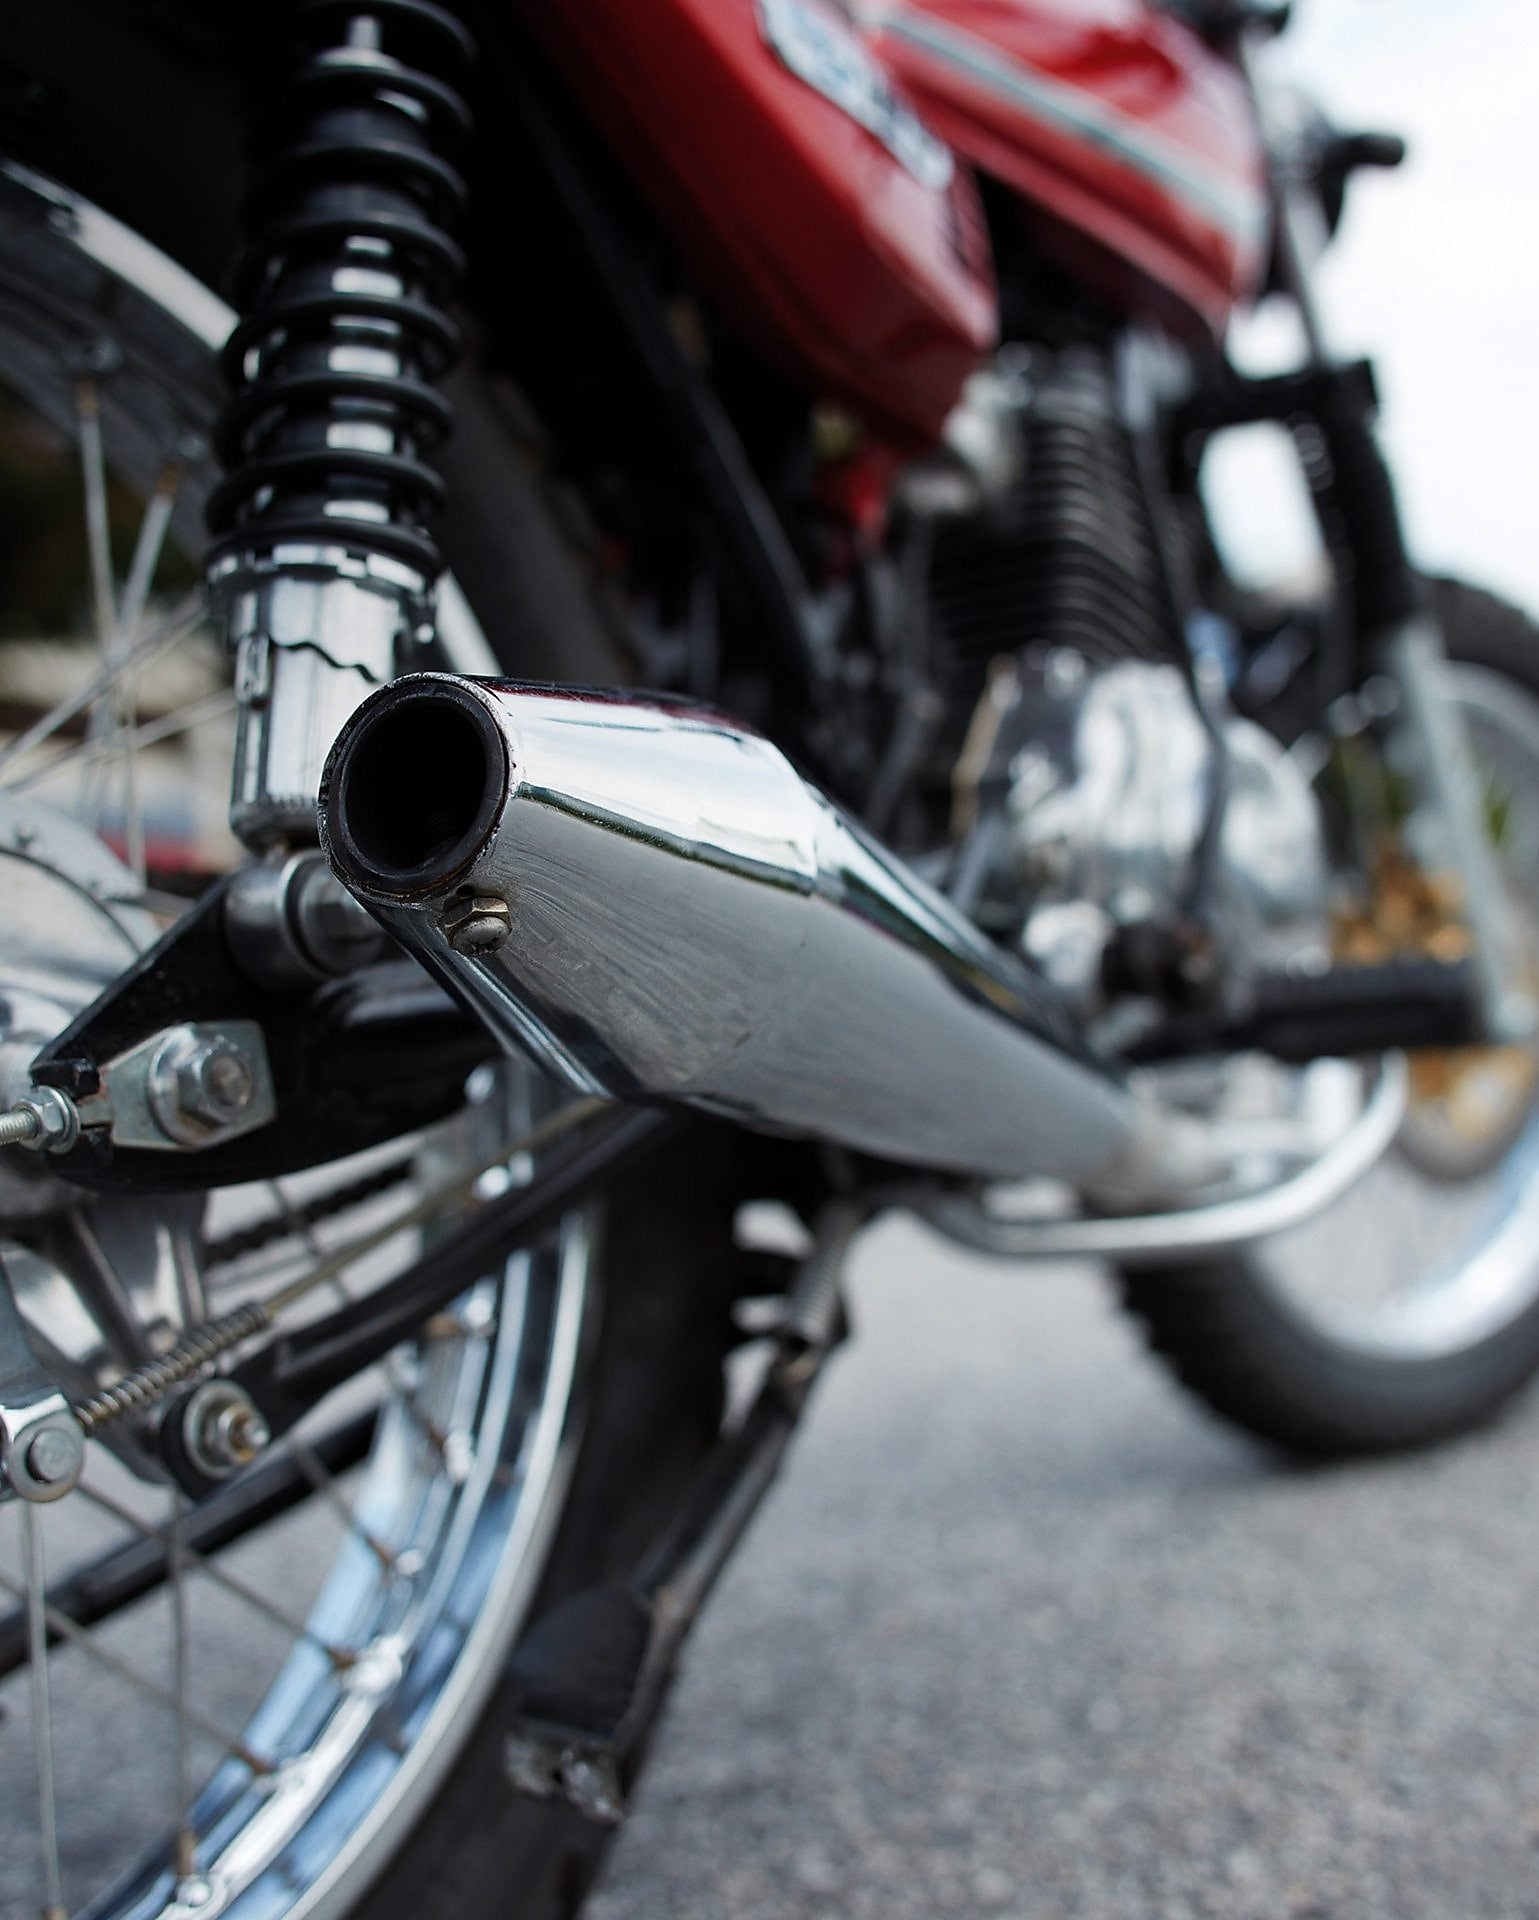 motorcycle parked on road with camera focused on the exhaust and wheels